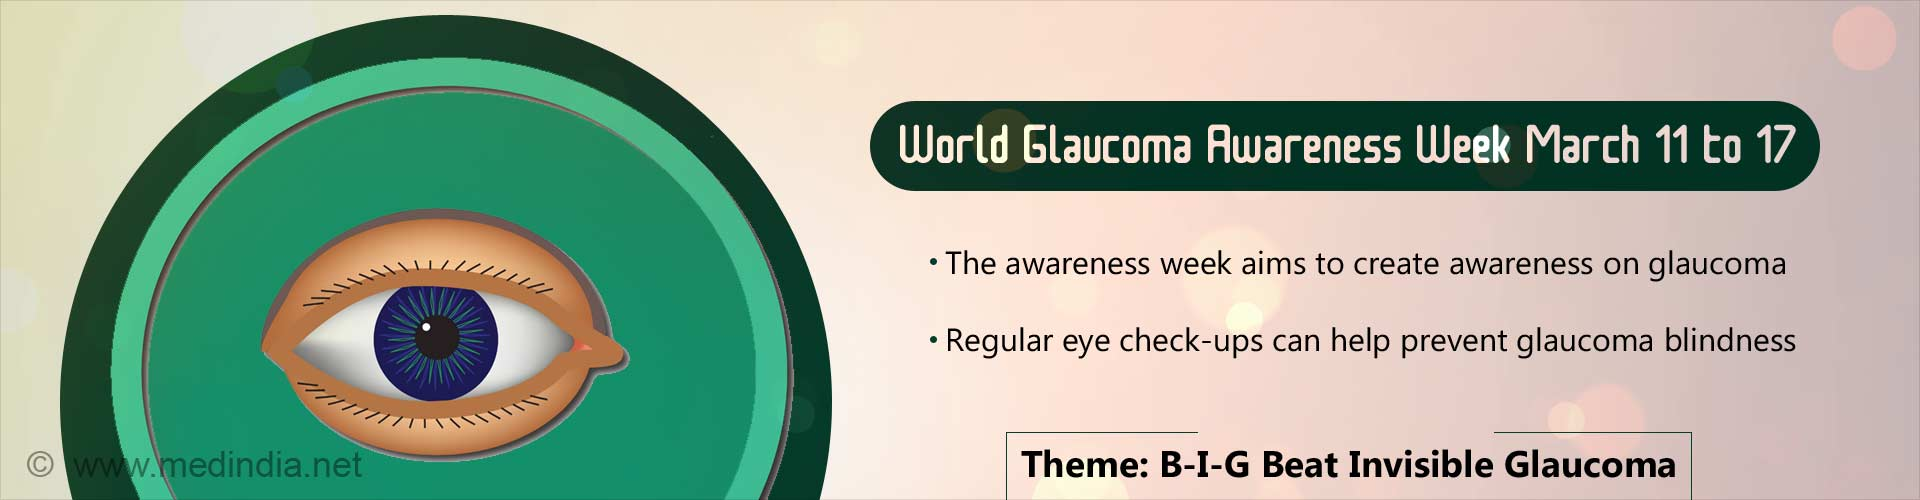 world glaucoma awareness week (march 11-17)